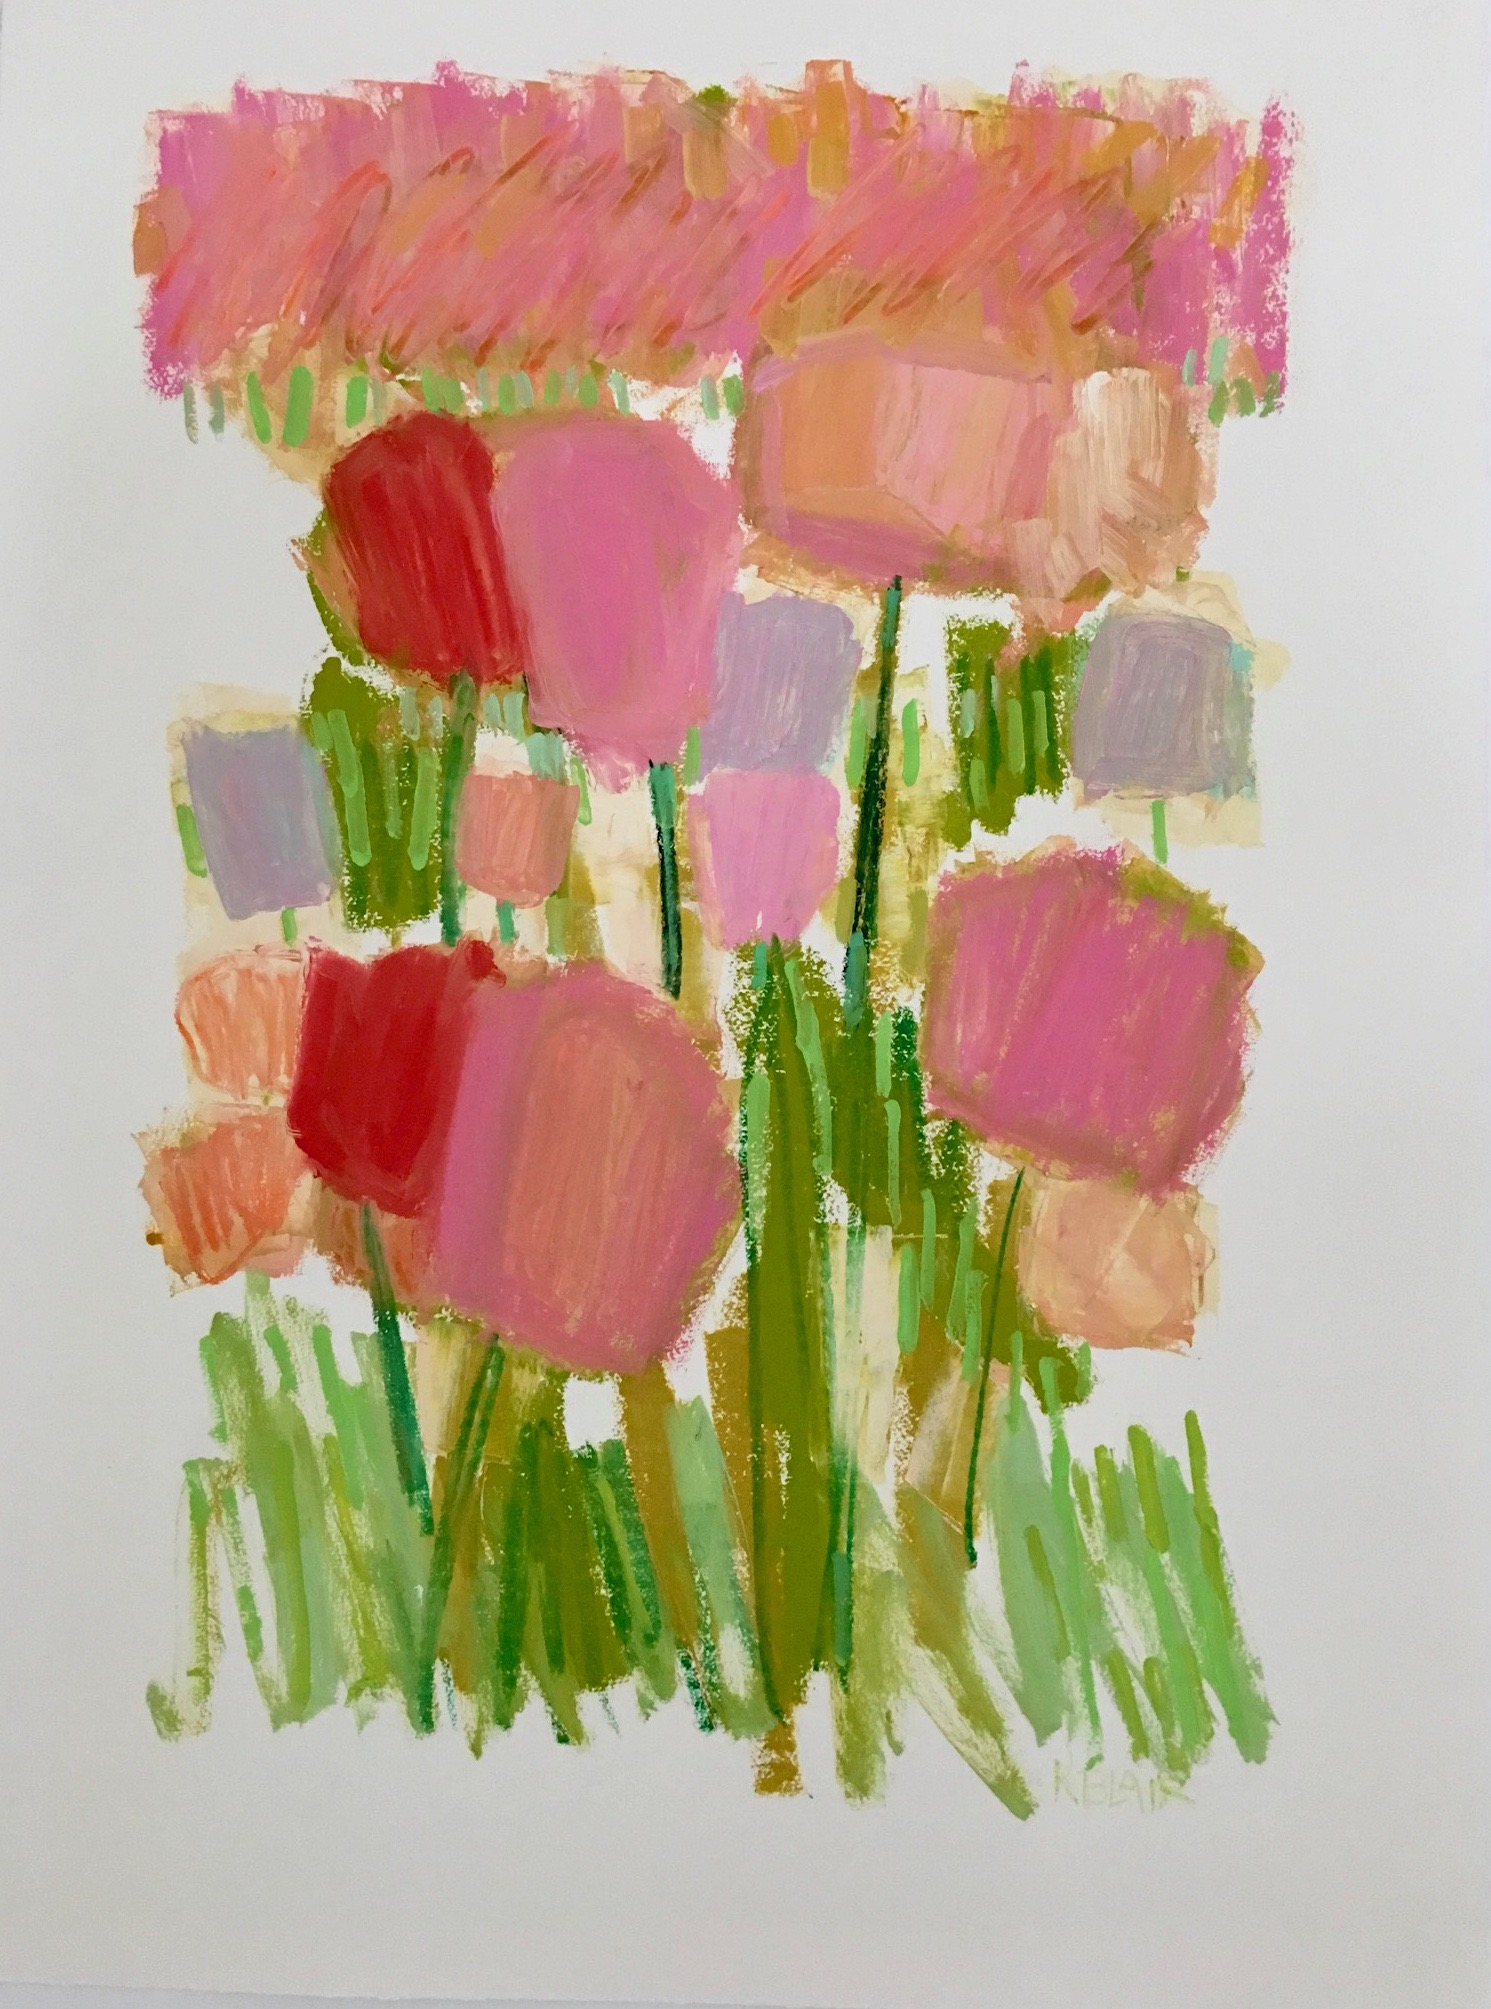 Tulips II, 30 x 23 inches, Mixed Media on Paper, $1,200.jpg